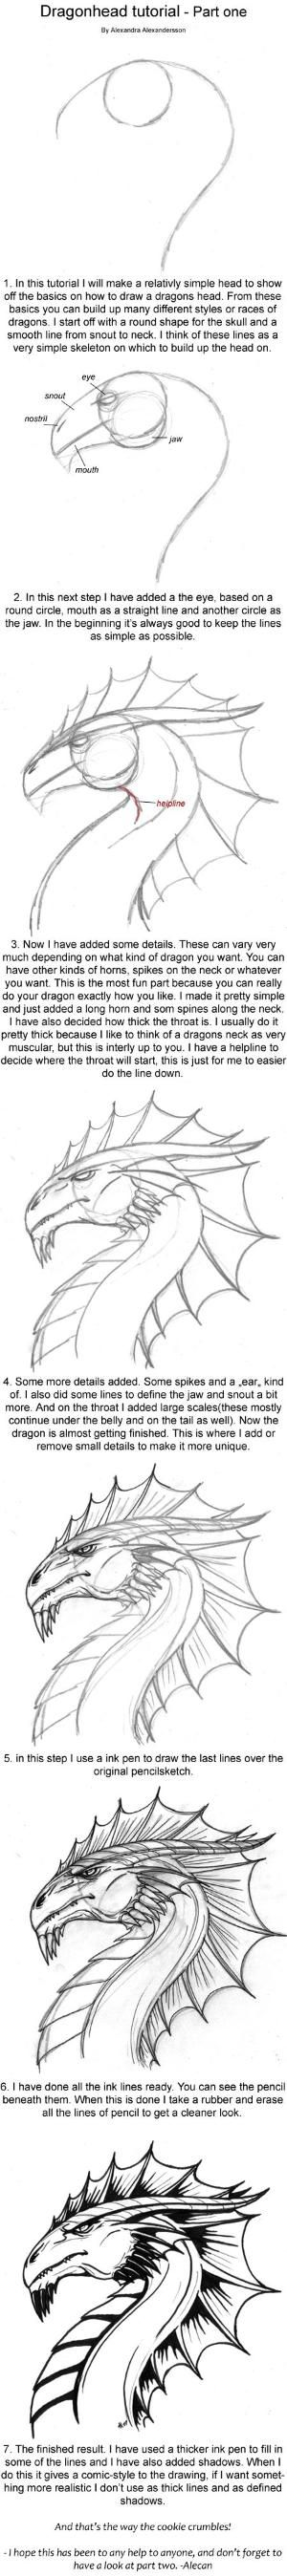 Dragonhead Tutorial Part One By Alecaniantart On @deviantart By  Suzanne